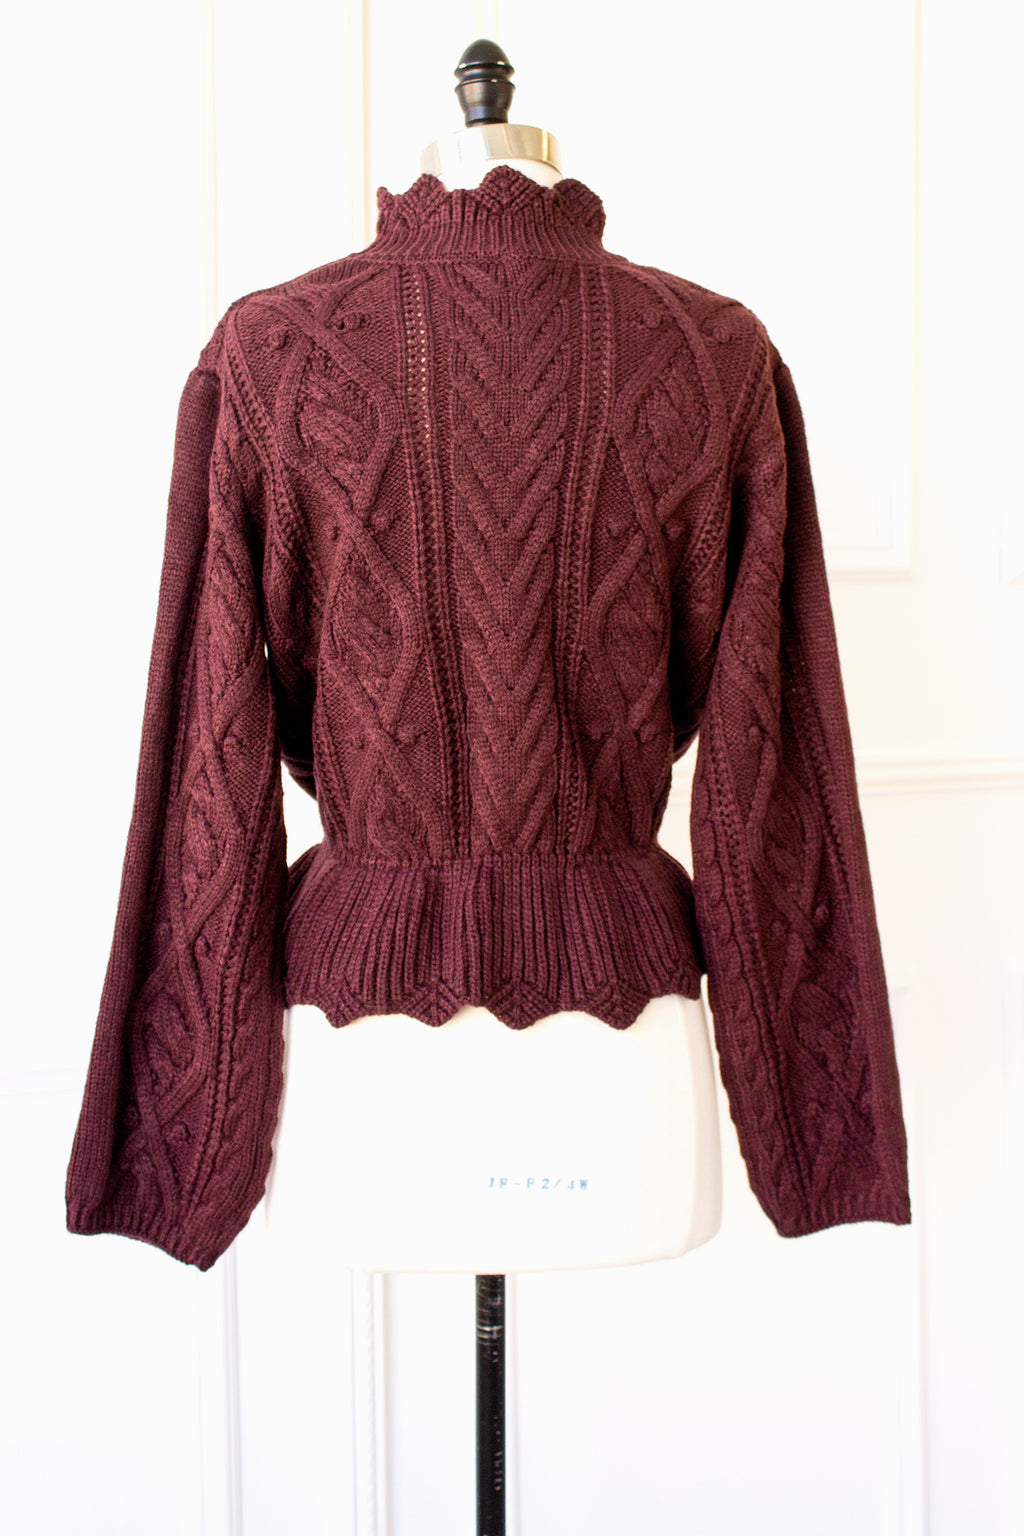 Farrah Scalloped Mock Neck Sweater - plum